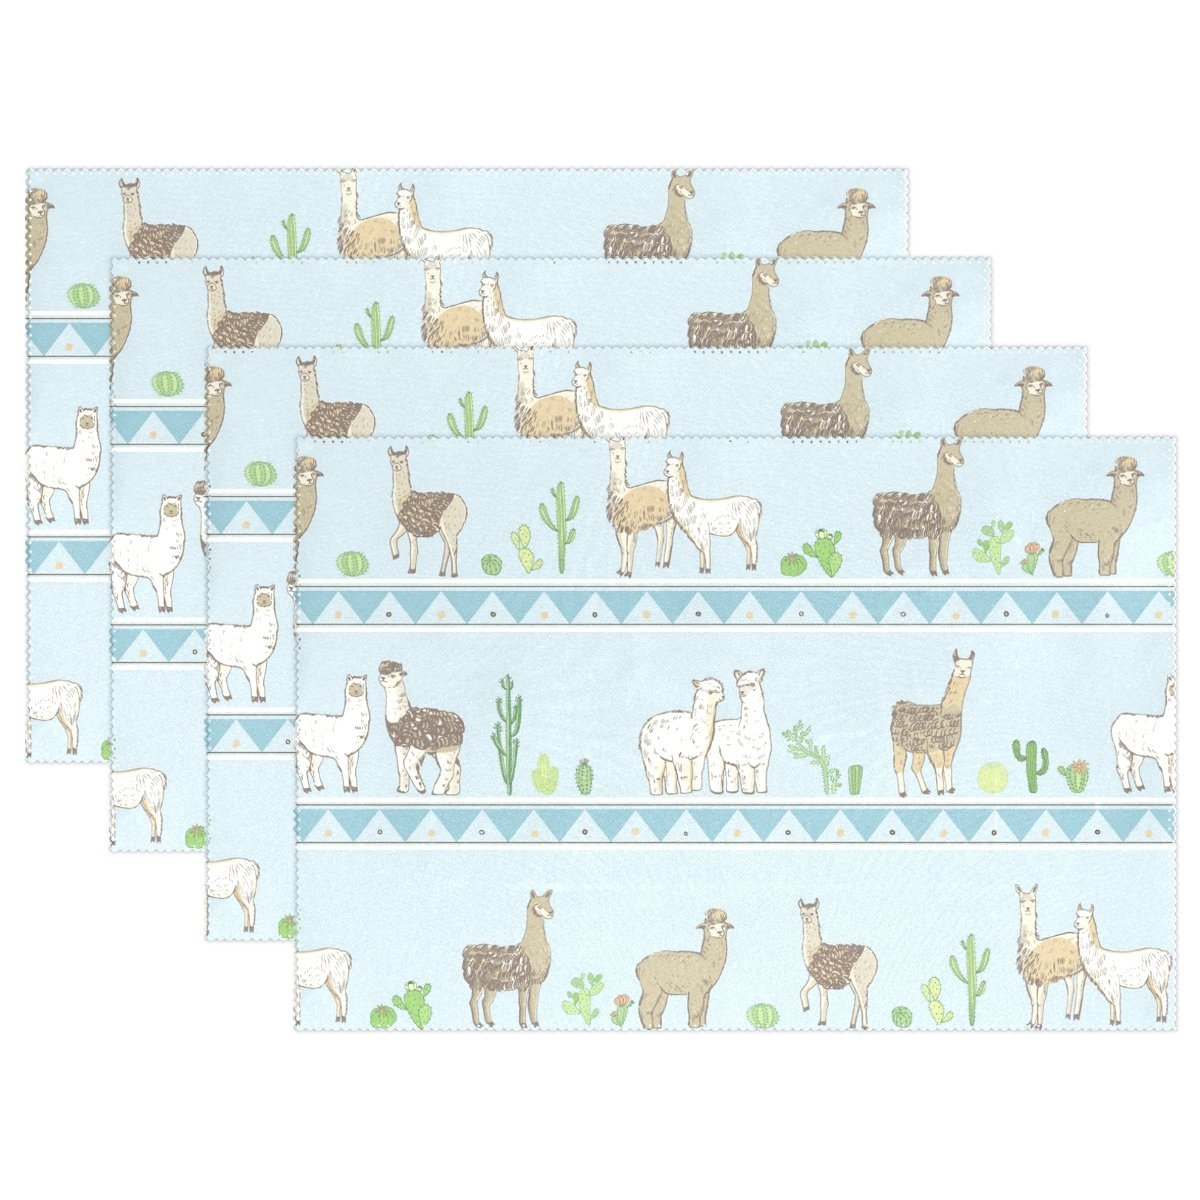 Top Carpenter Funny Lama Animal And Cactus Place Mats Washable Heat Resistant Polyester Table Mats 12'' x 18'', Set of 6